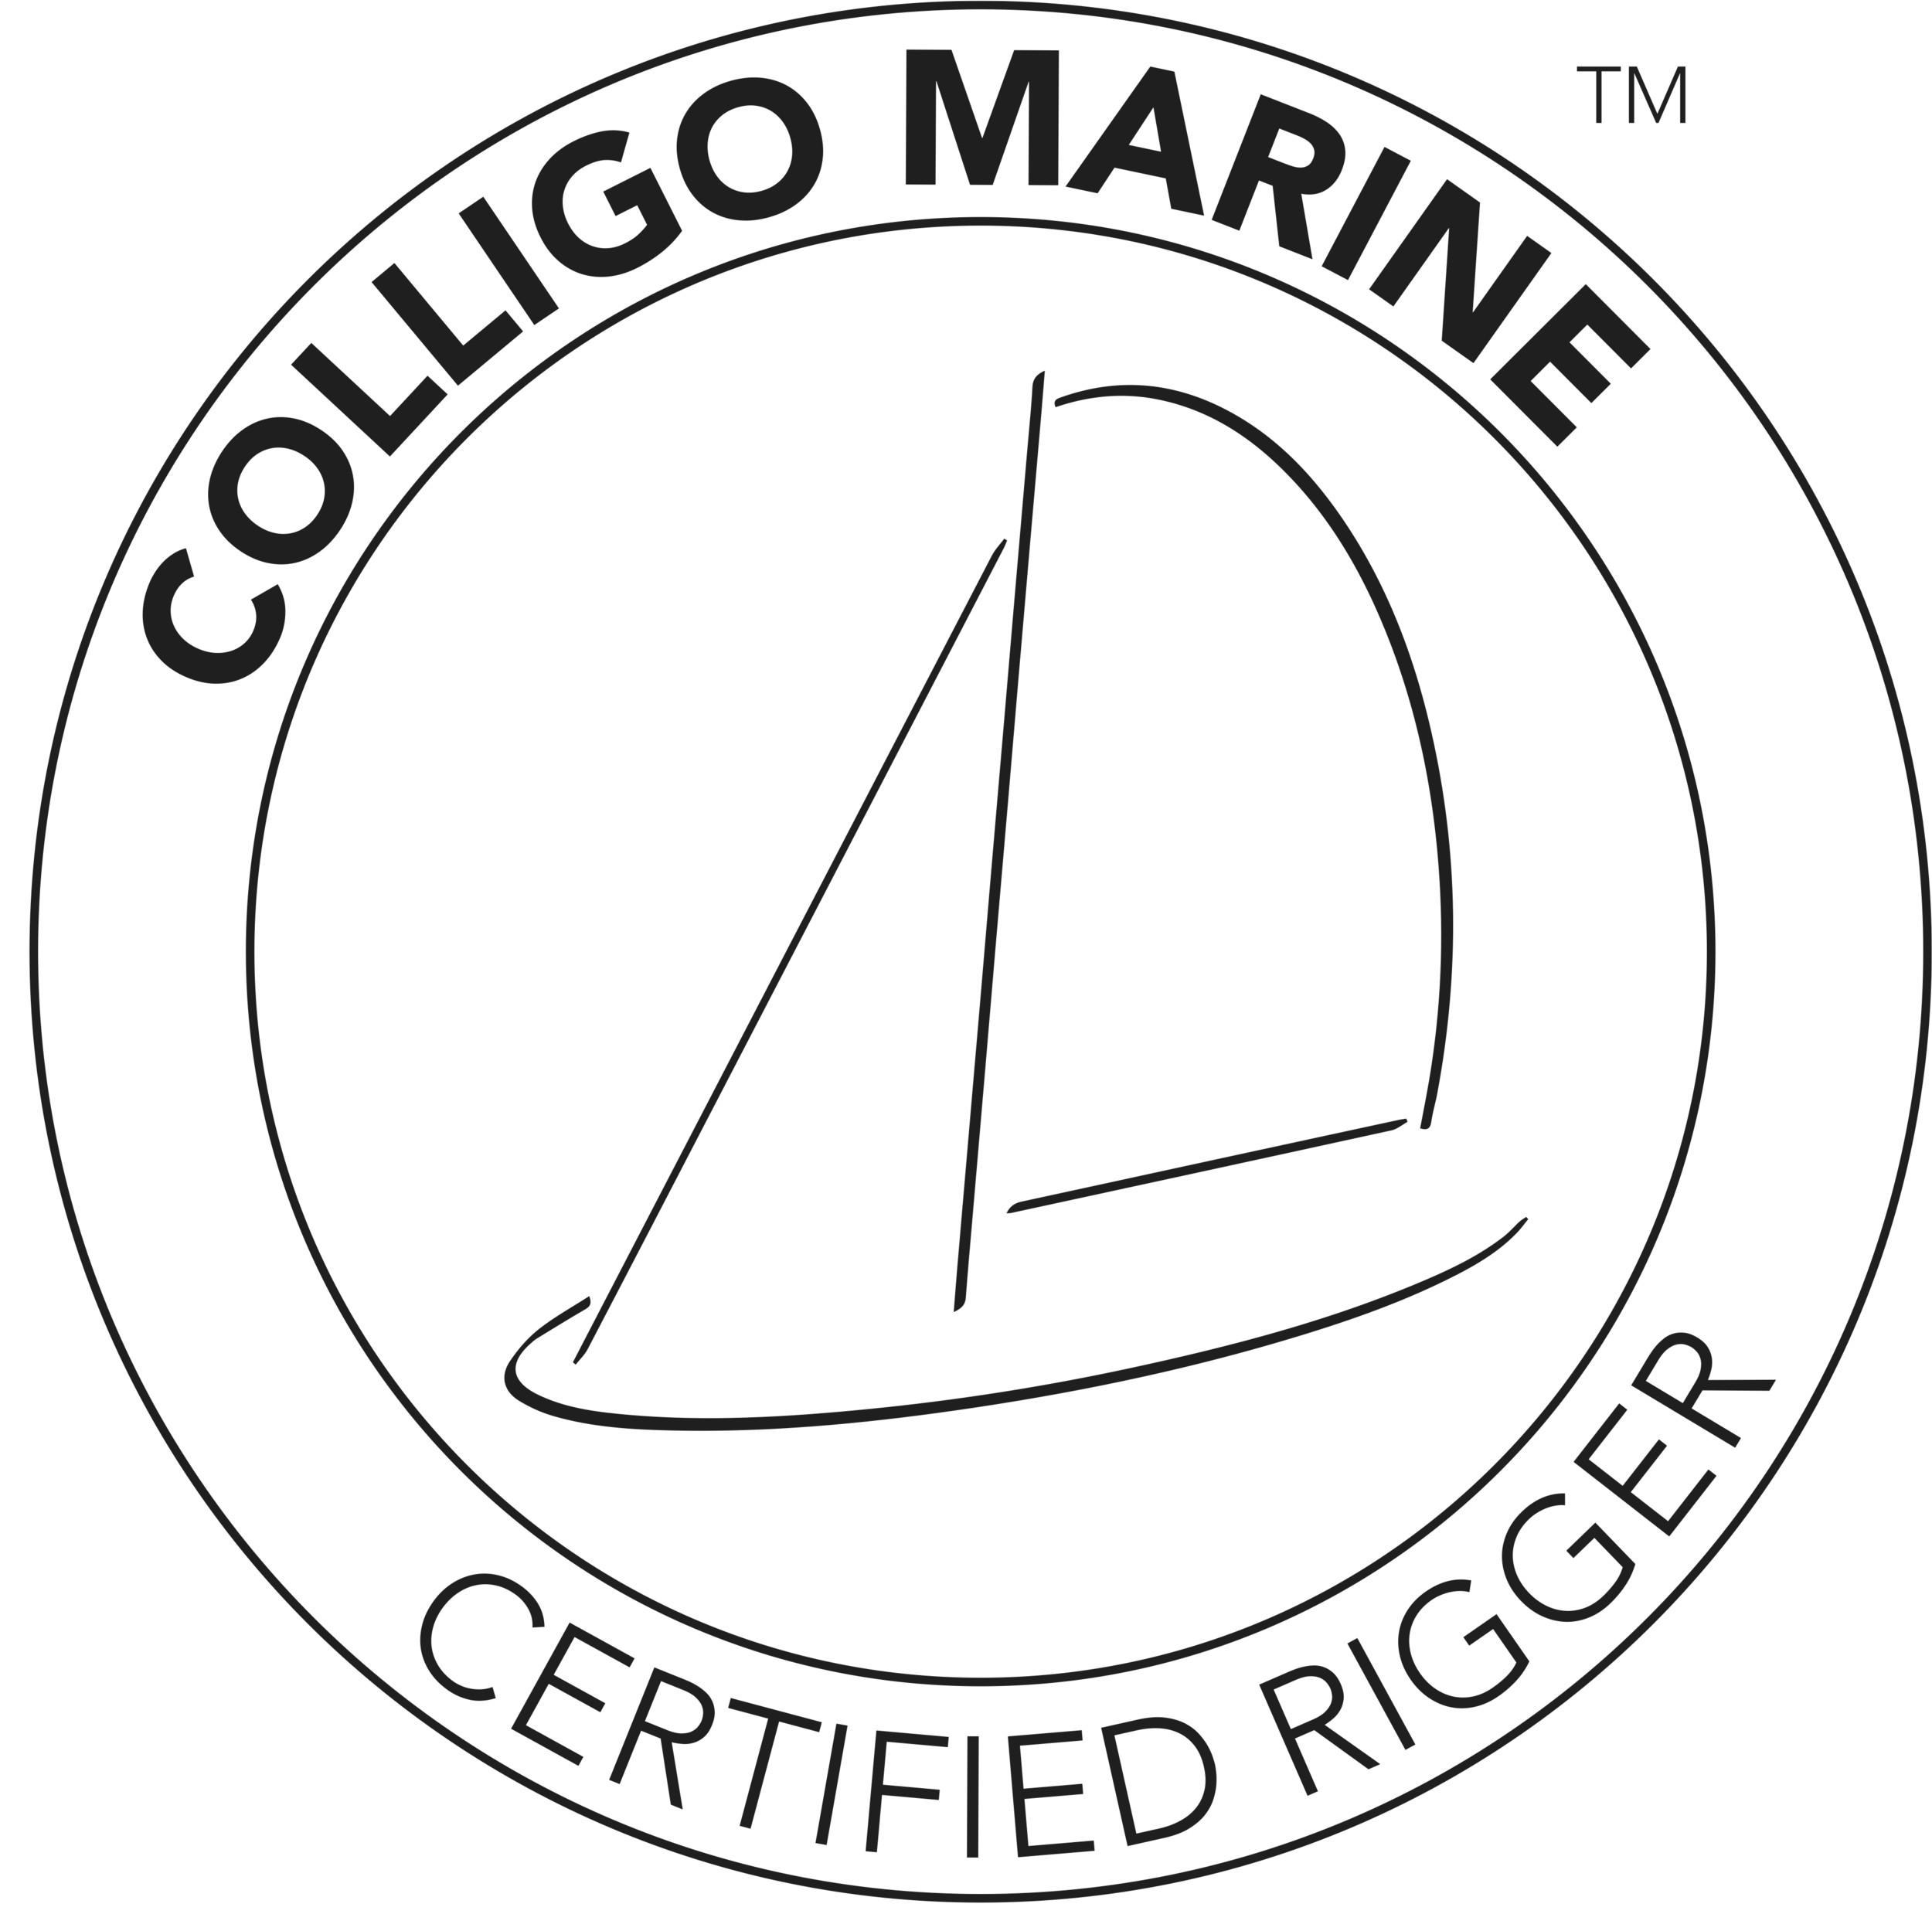 Certified Rigger Stamp.png